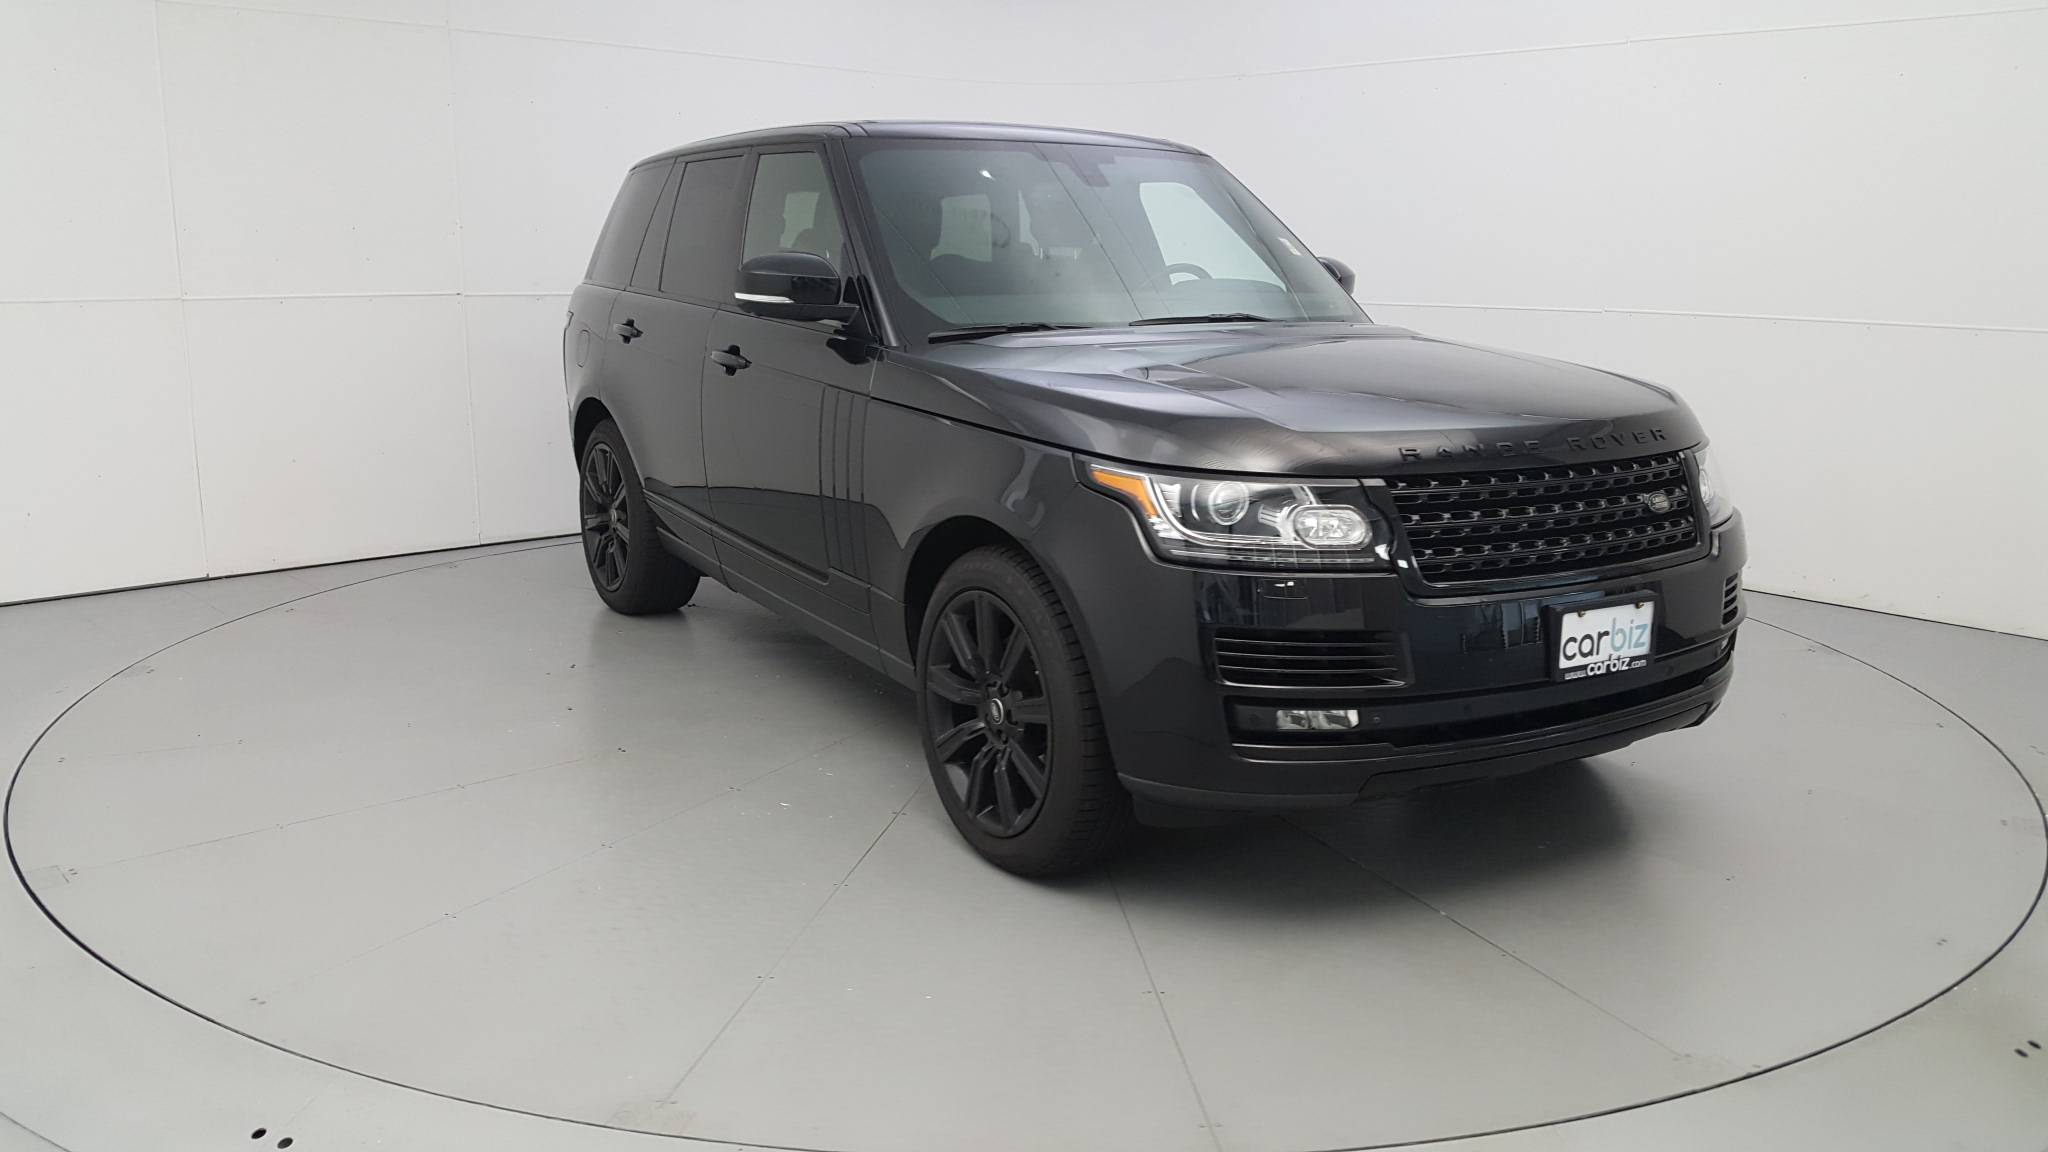 Pre-Owned 2015 Land Rover Range Rover HSE